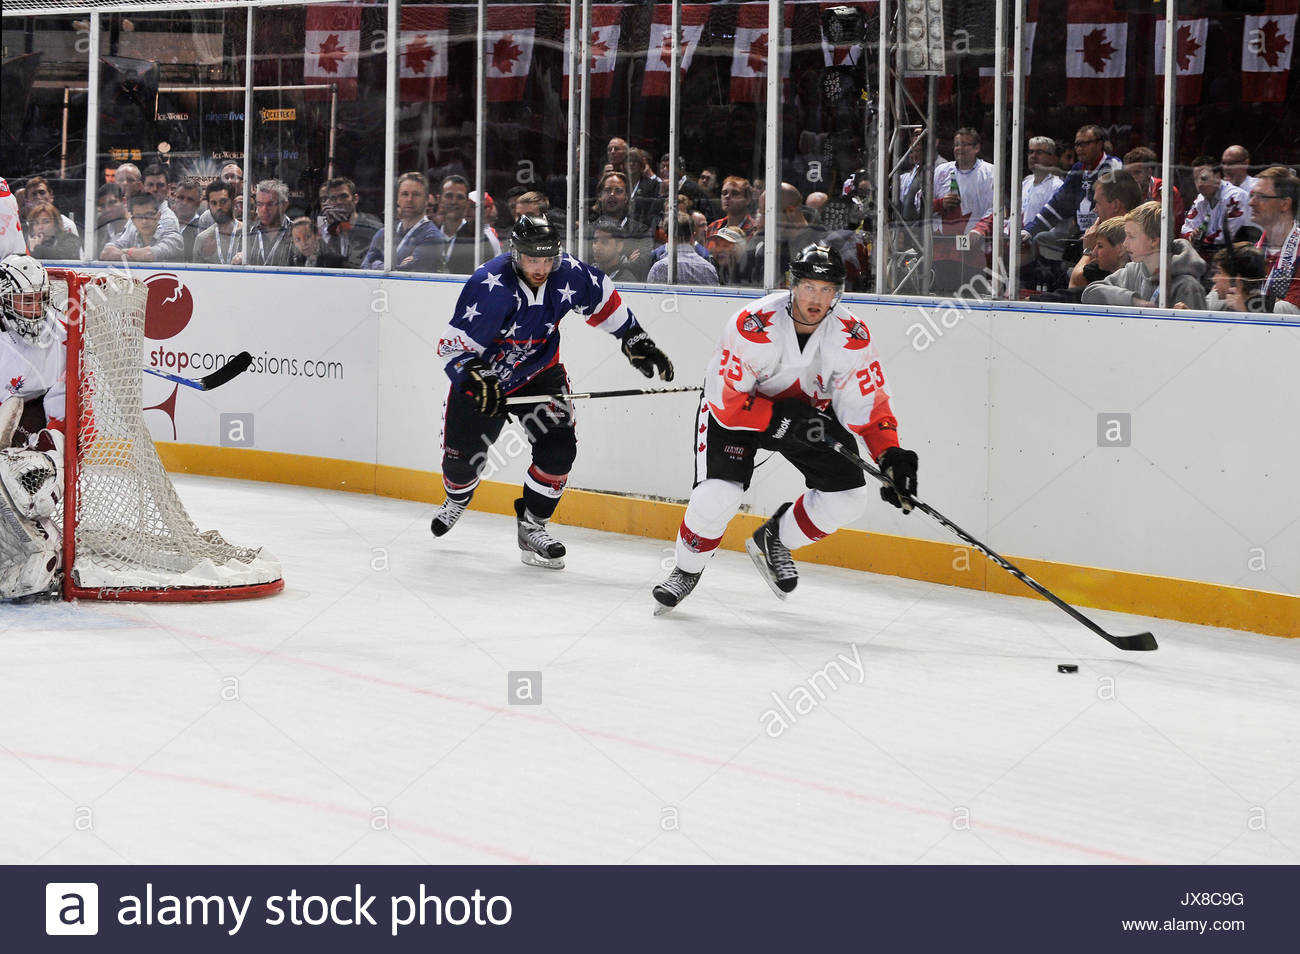 ece66e5d270 Kyle Bushee of Team USA attempts to catch TJ Fast of Team Canada. Leading ice  hockey players compete in the IIHT International Ice Hockey Tournament to  ...